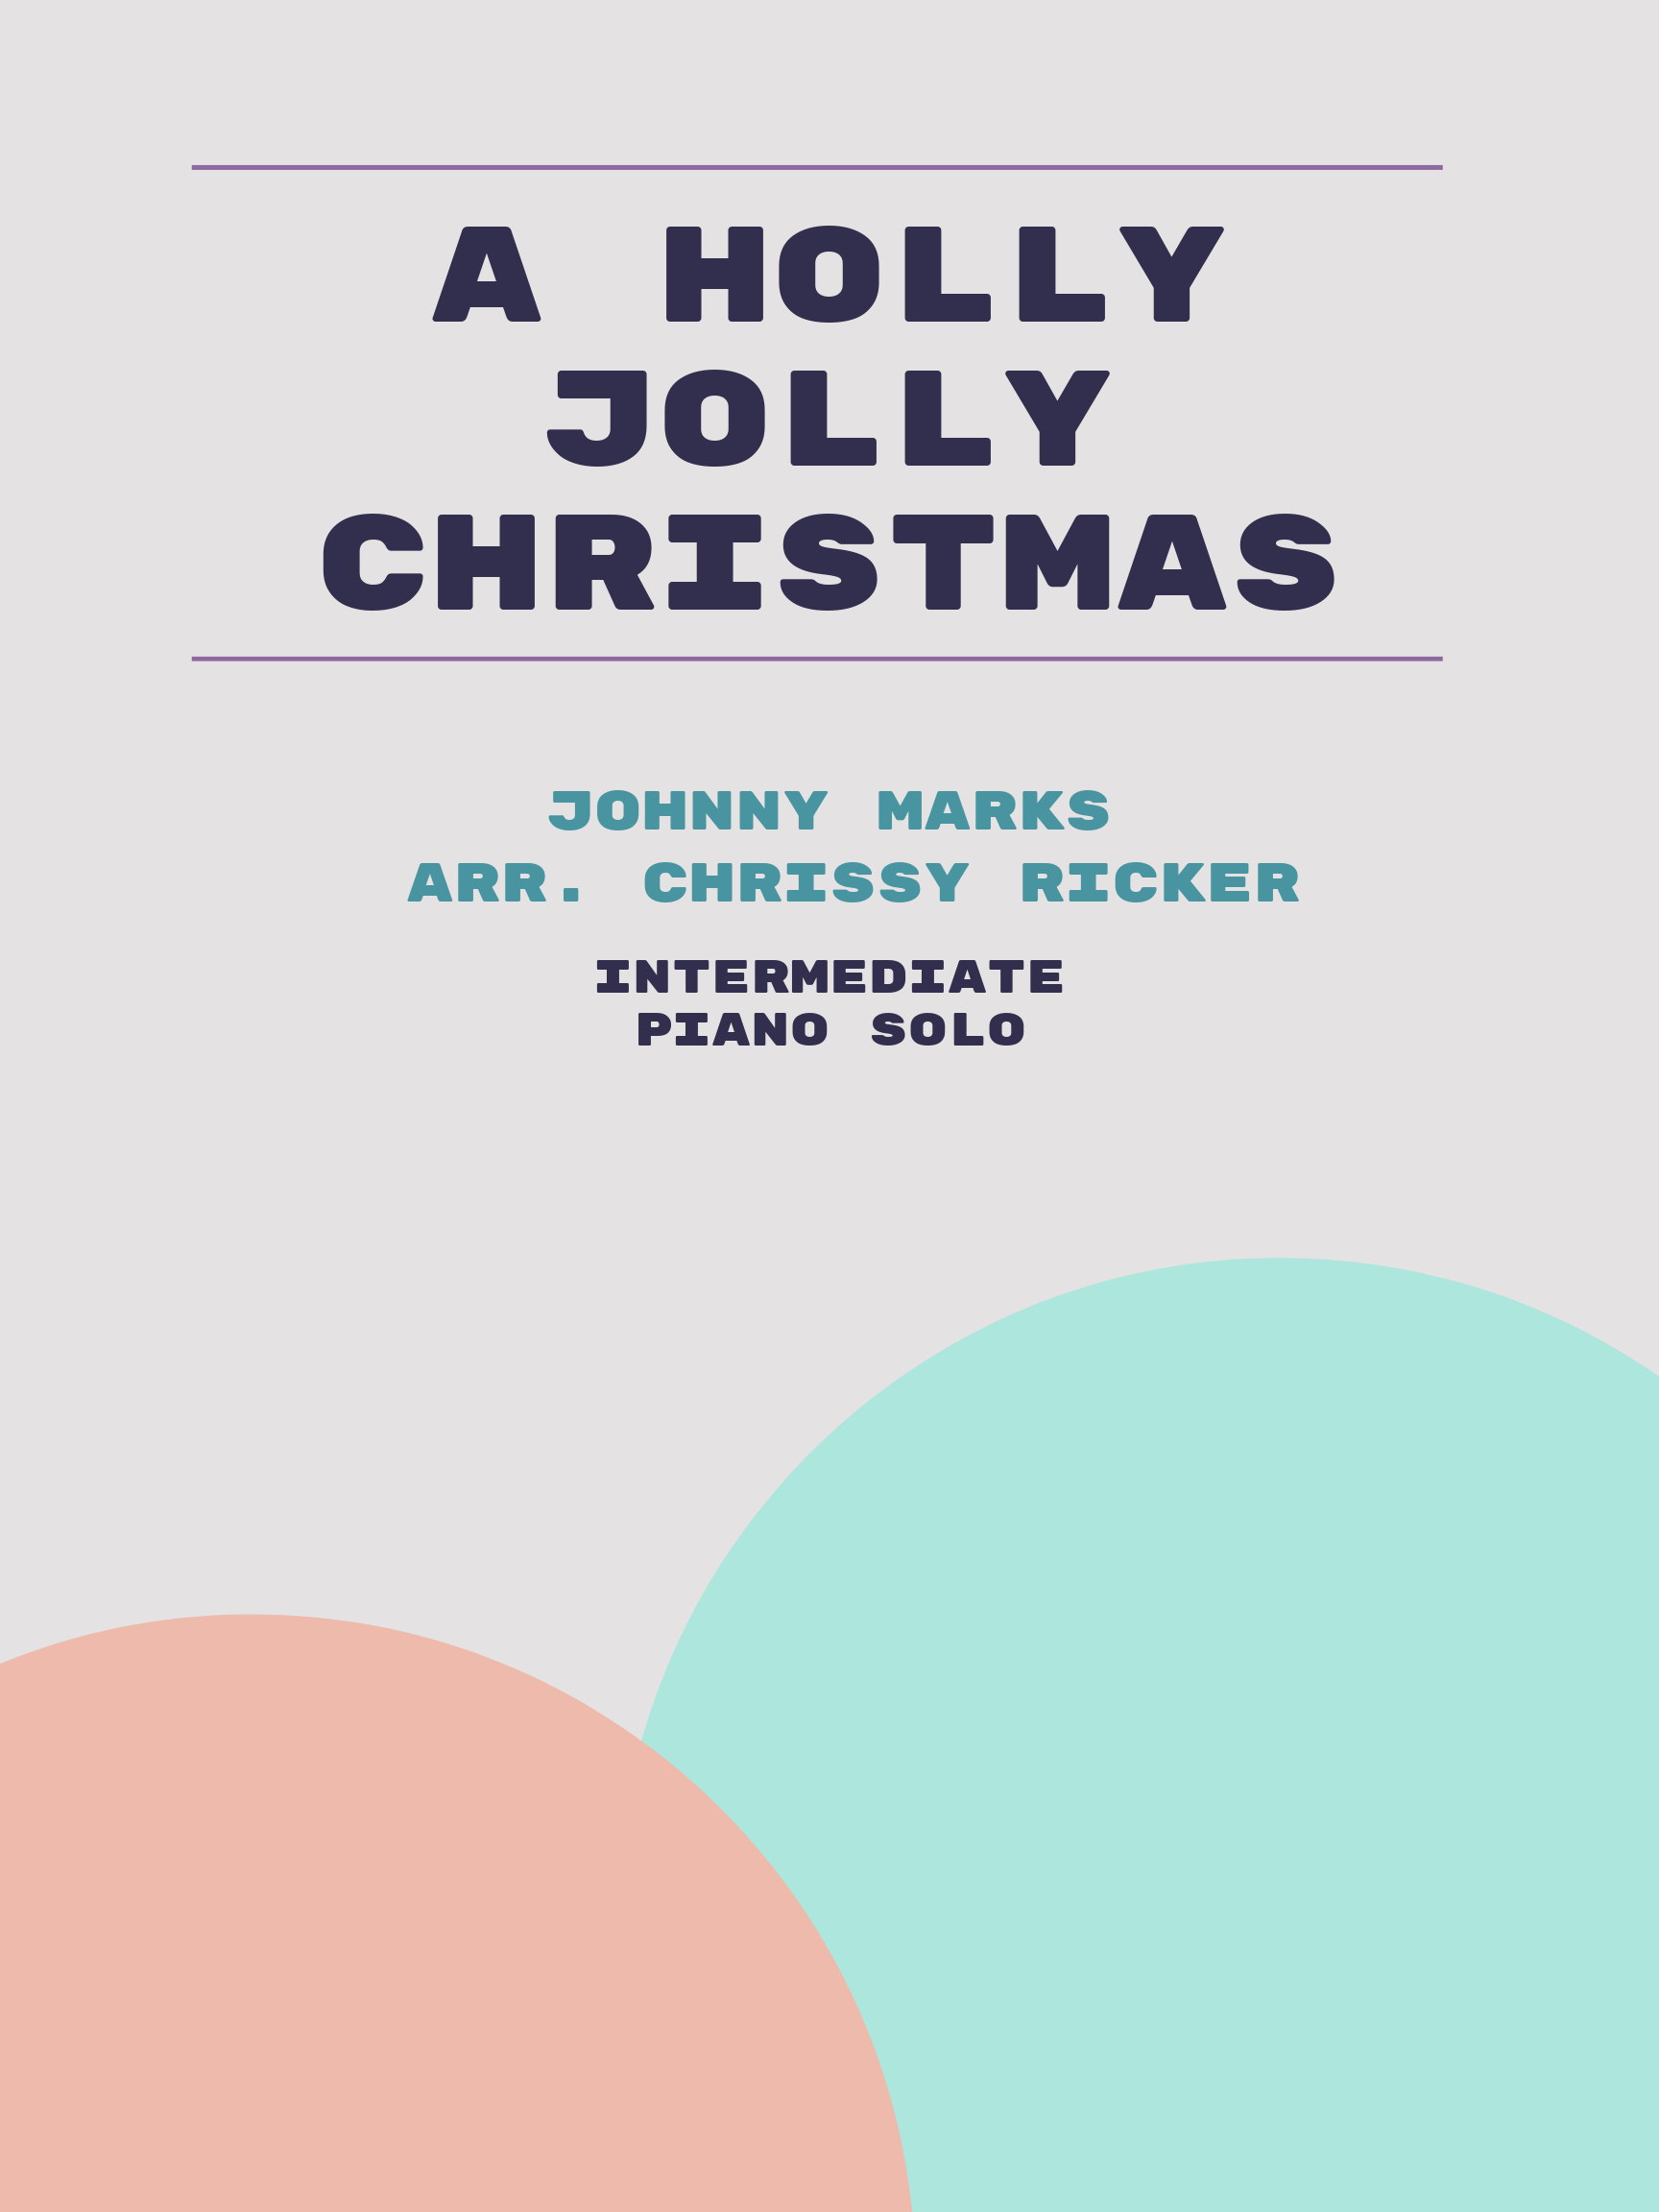 A Holly Jolly Christmas by Johnny Marks